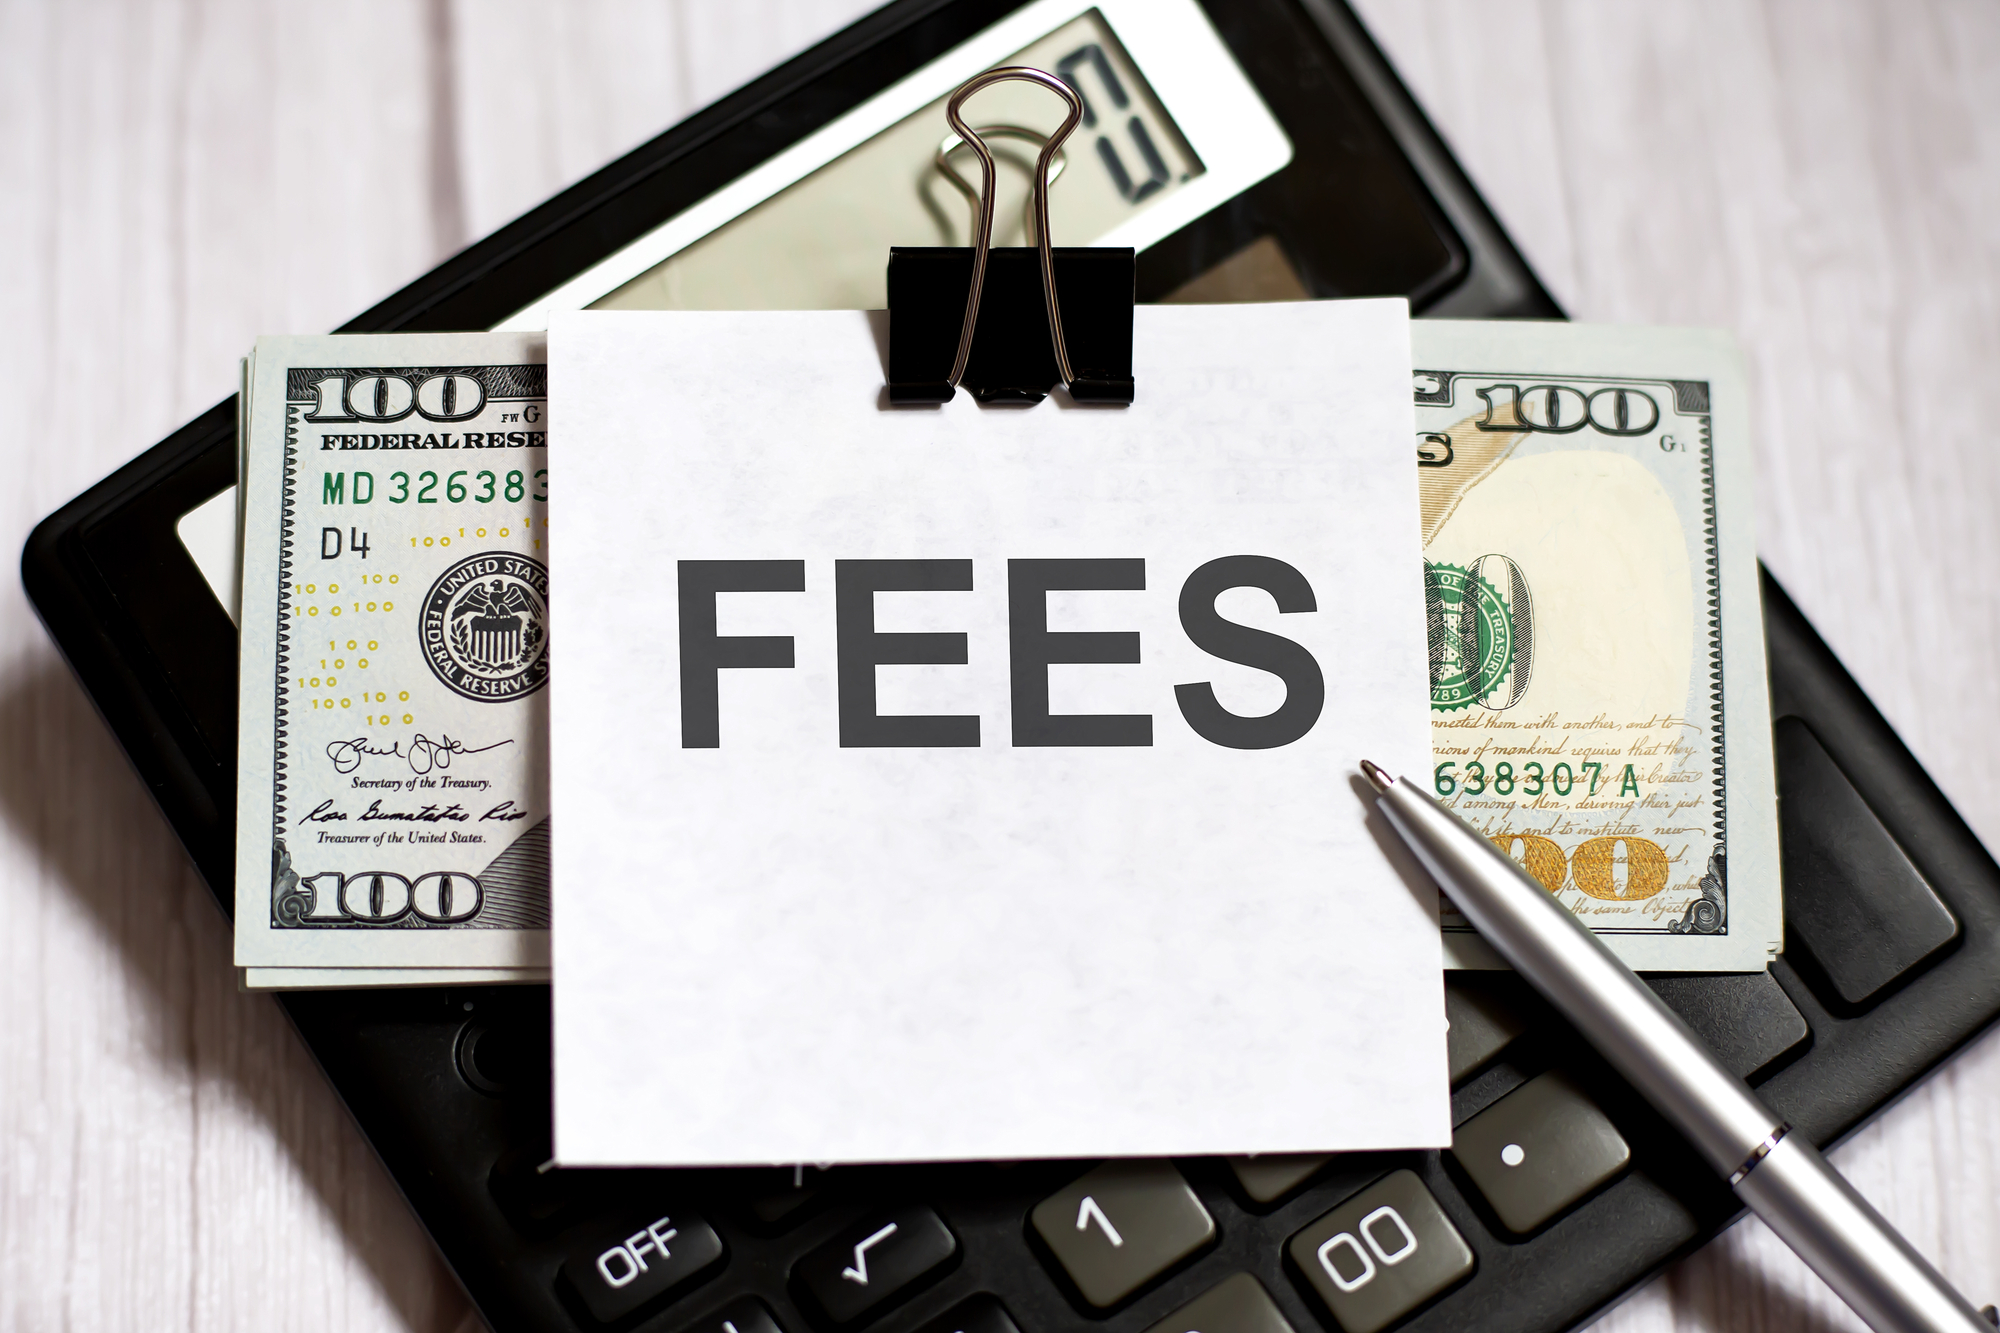 Fees – Part I: What Fees Am I Paying?